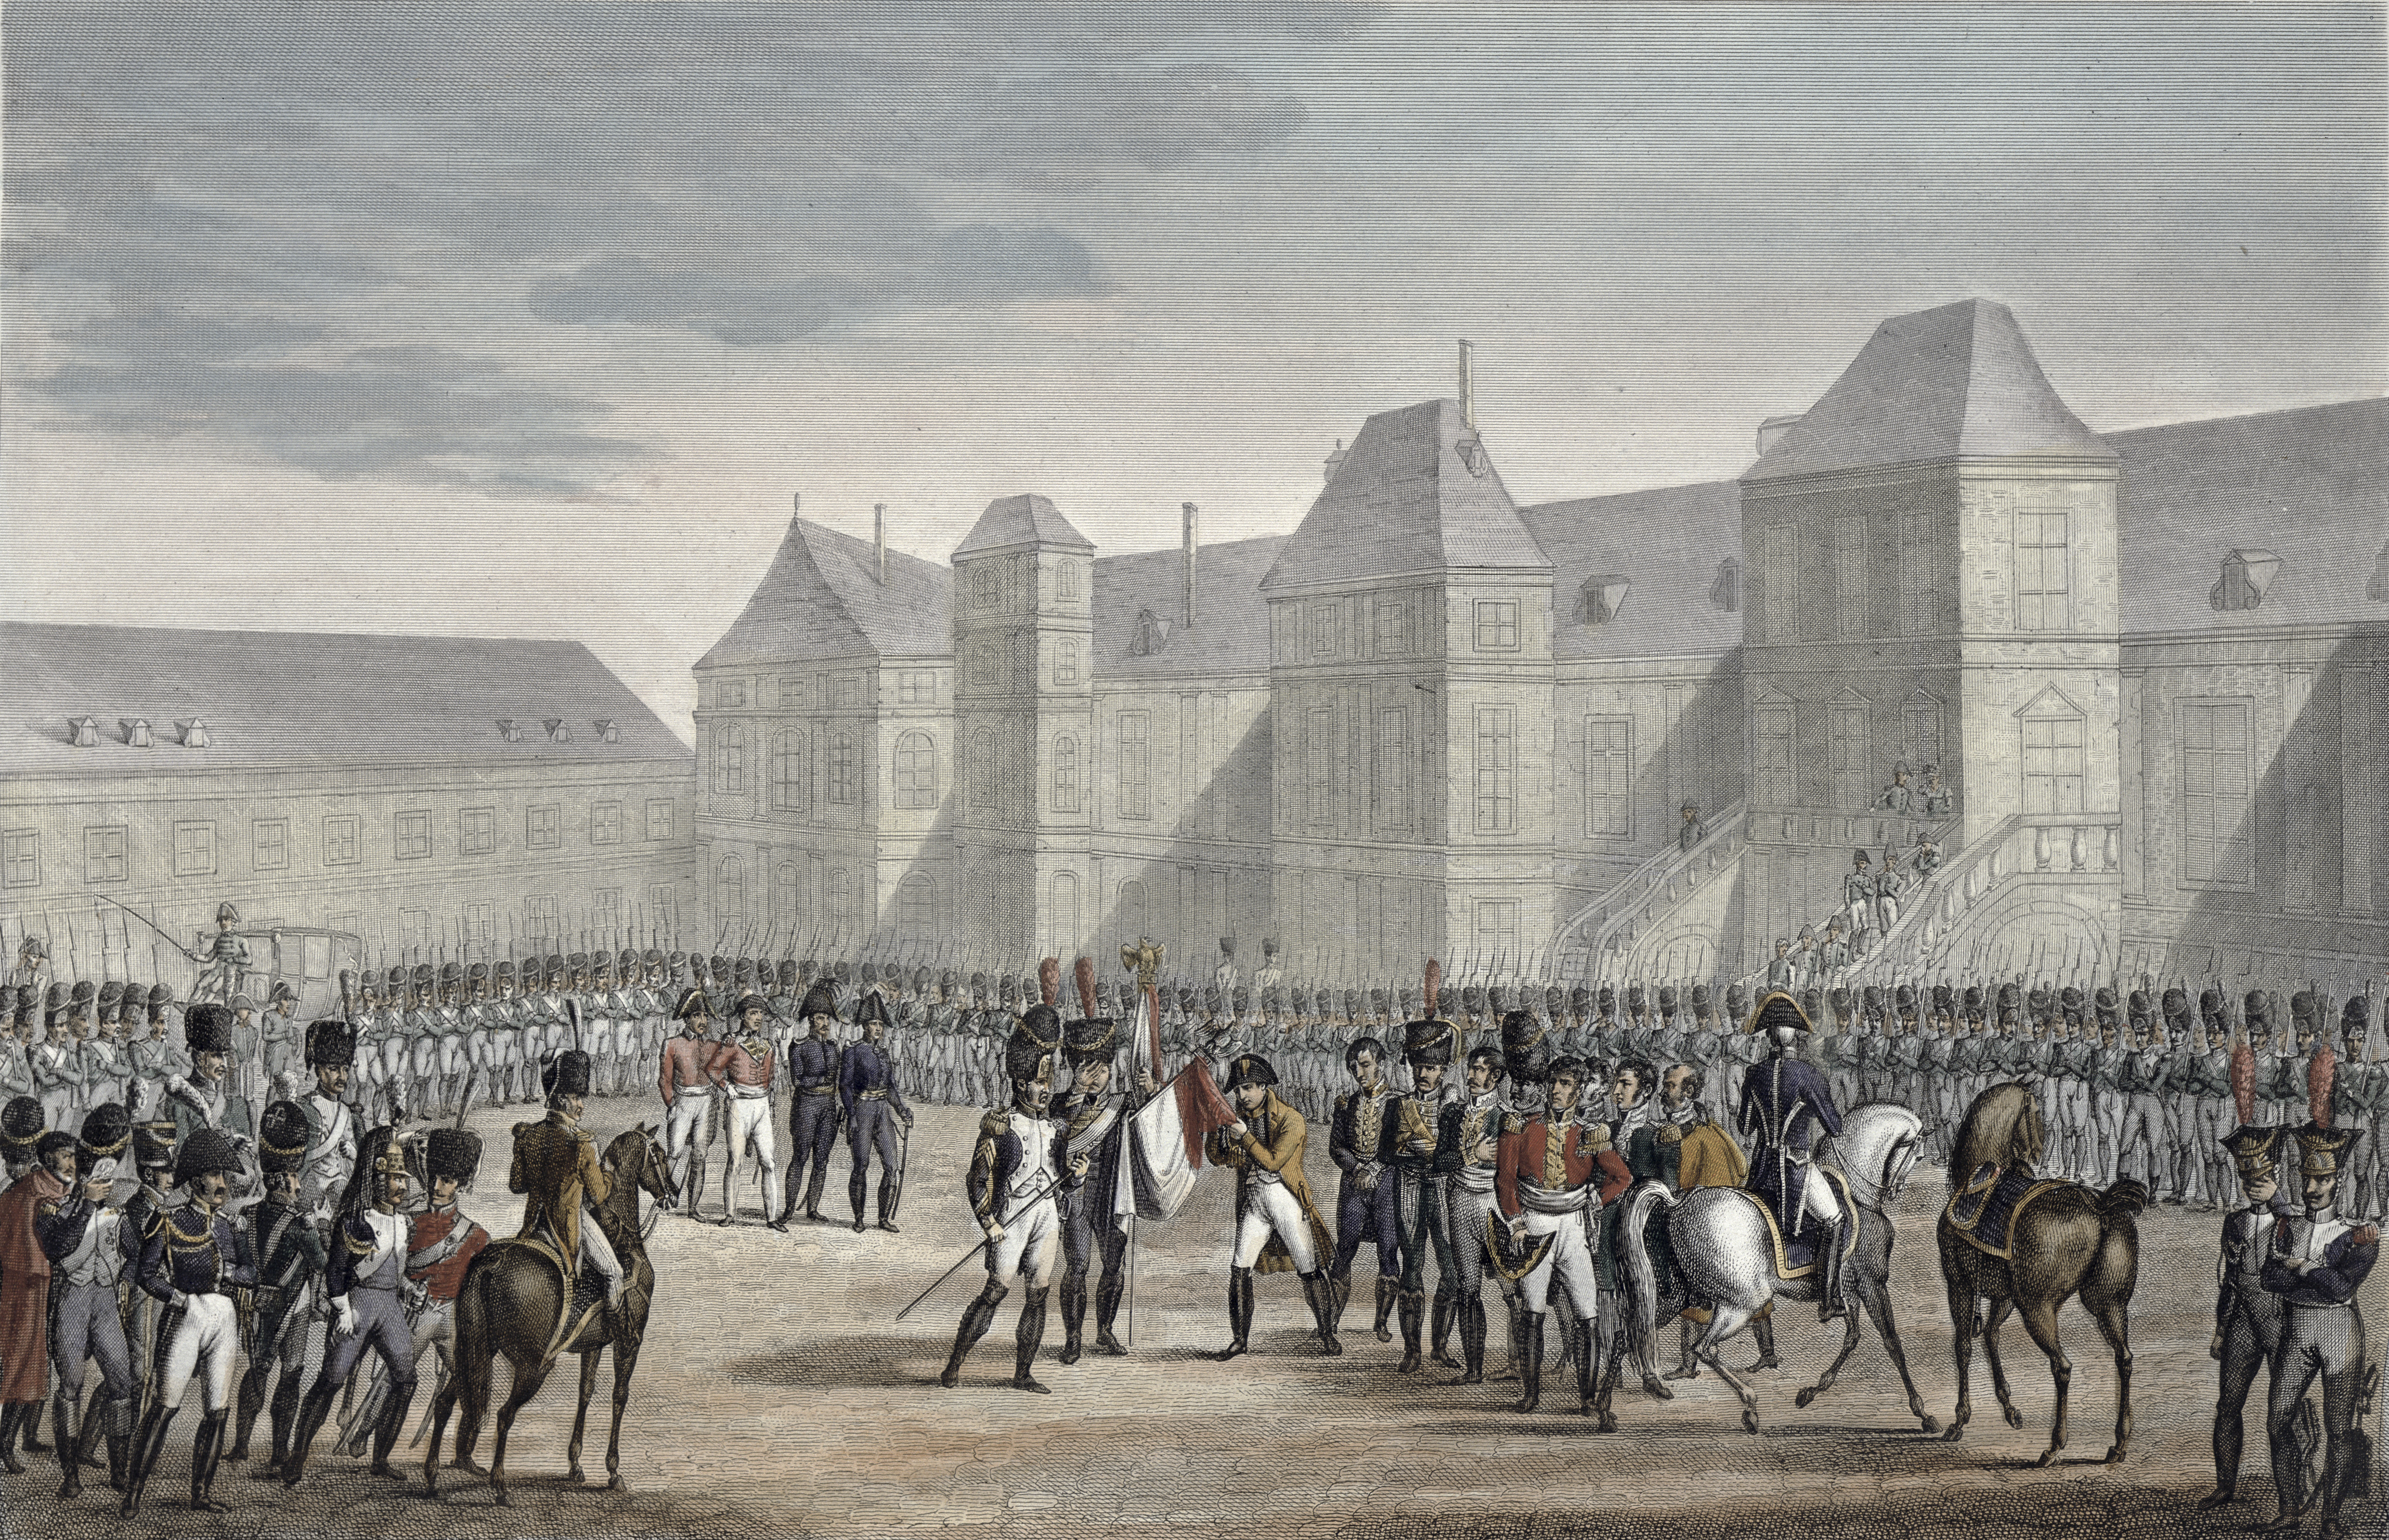 The Abdication Of Napoleon And His Departure From Fontainebleau For Elba 20th April 1814